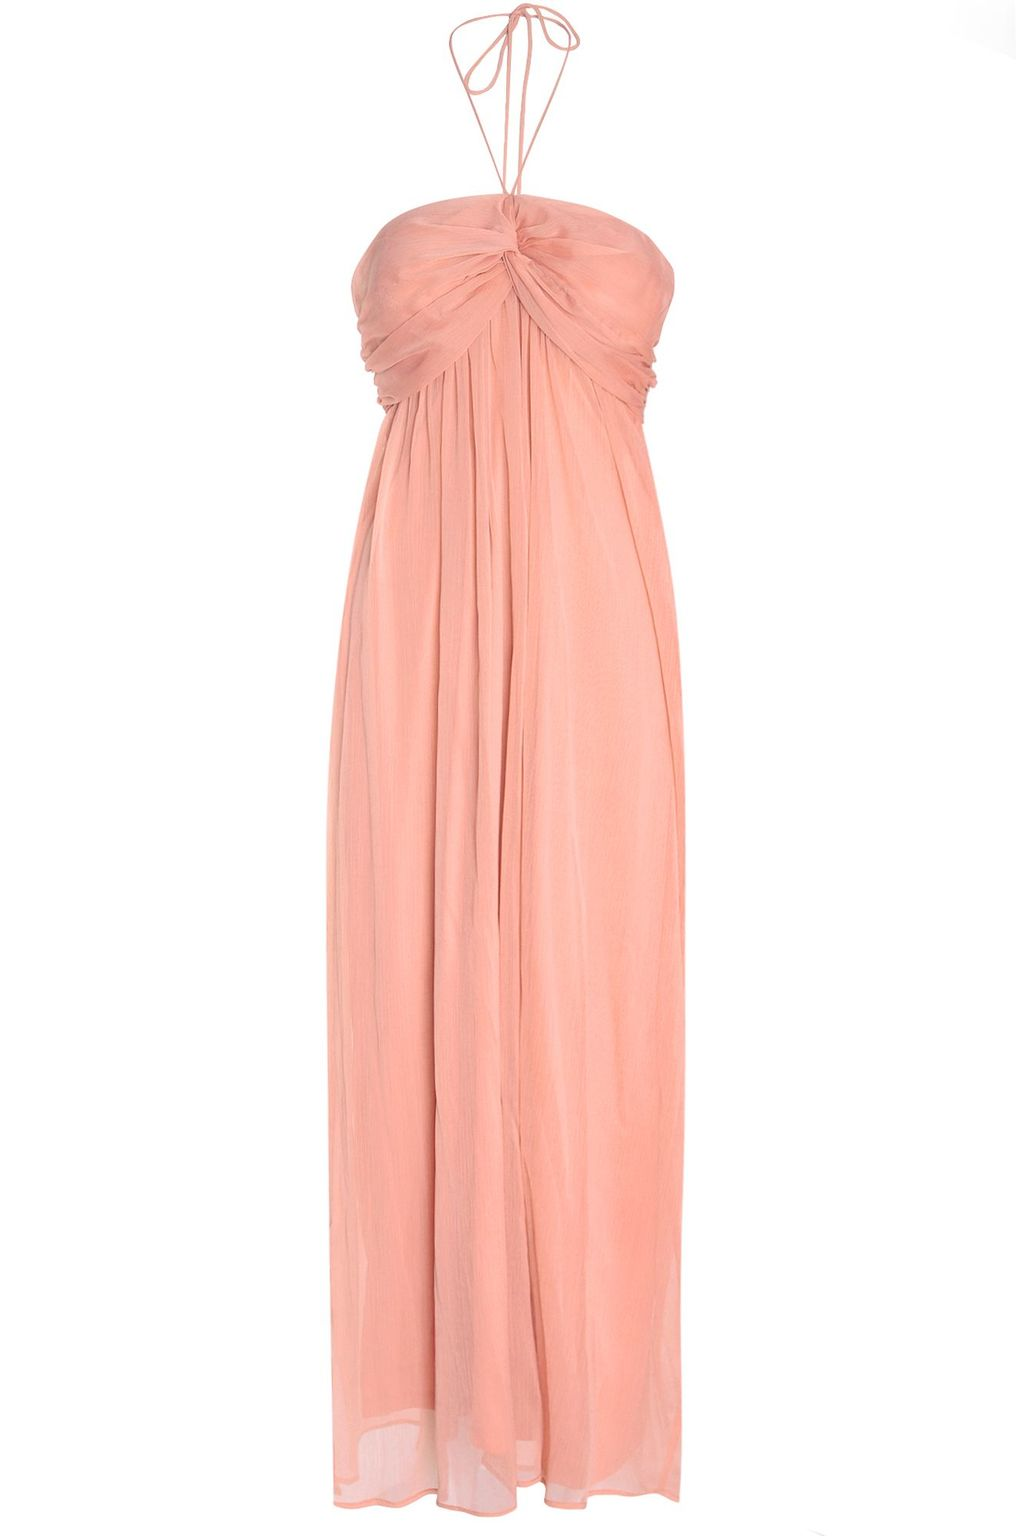 Ruched Halterneck Maxi Dress, Orange - pattern: plain; sleeve style: sleeveless; style: maxi dress; neckline: low halter neck; predominant colour: pink; occasions: casual; length: floor length; fit: body skimming; fibres: polyester/polyamide - 100%; sleeve length: sleeveless; pattern type: fabric; texture group: jersey - stretchy/drapey; season: s/s 2016